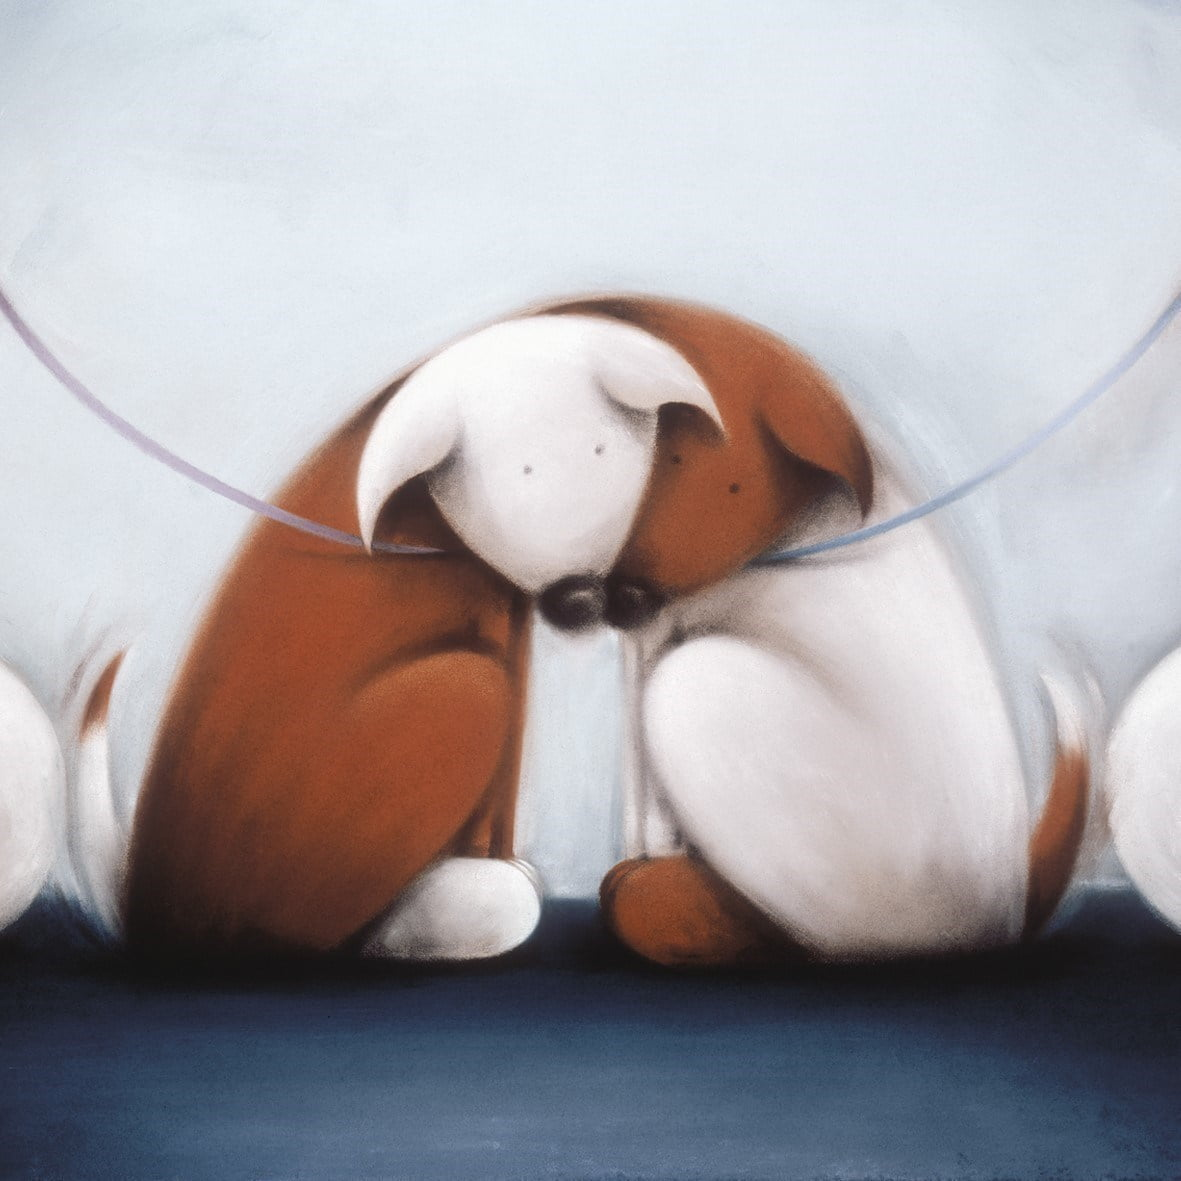 Opposites Attract ~ Doug Hyde